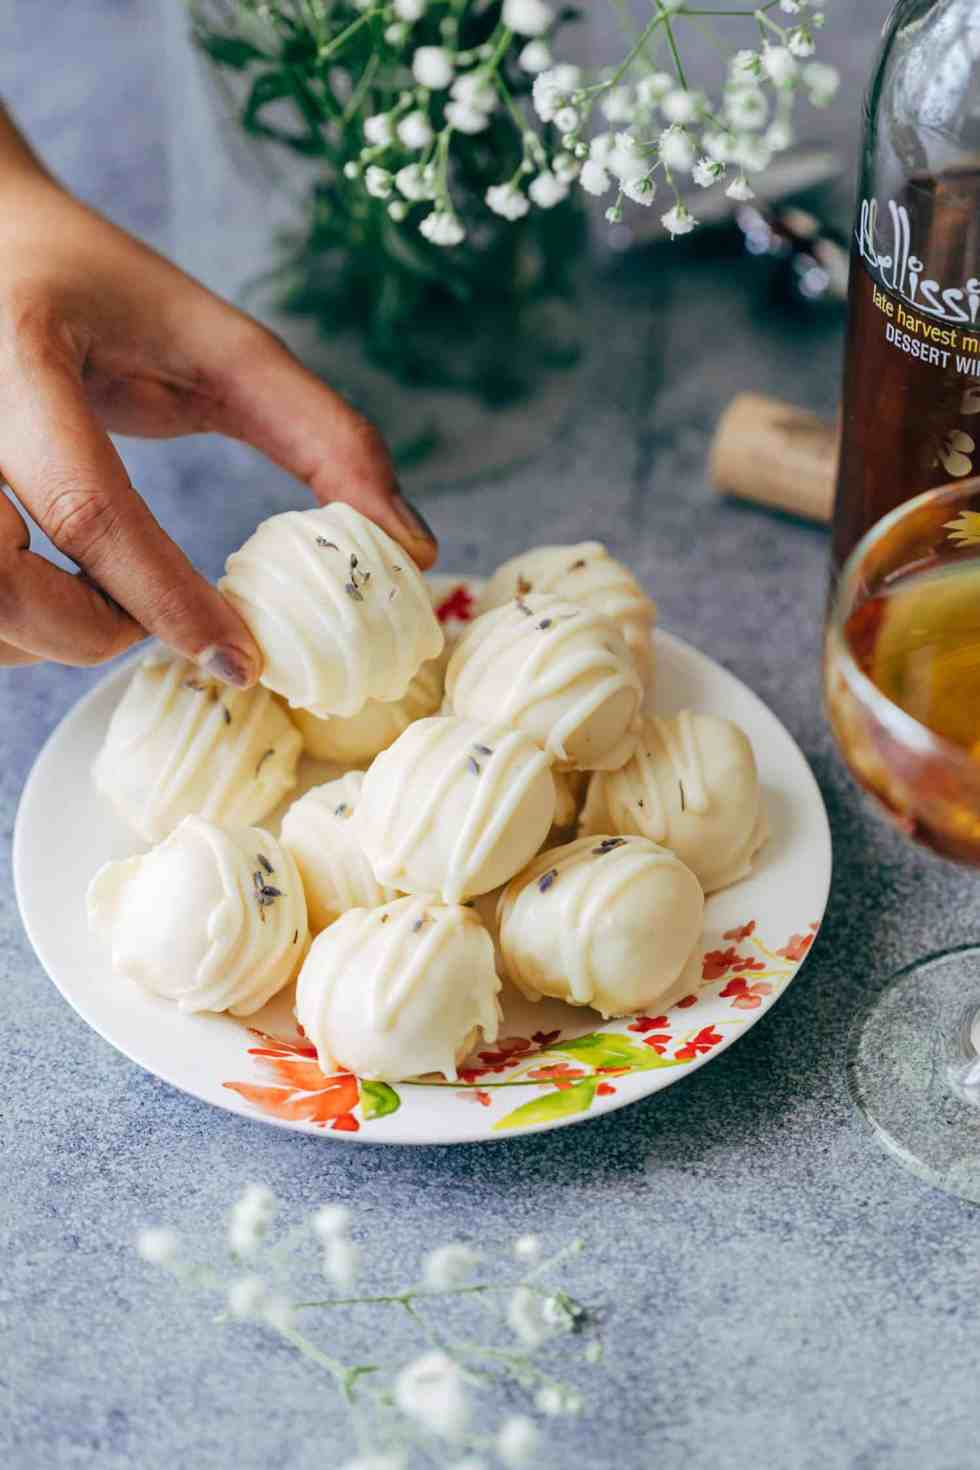 Lavender white chocolate truffles are fragrant, creamy white chocolate bites that are perfect for the festive season and holidays! Use them to serve as mini desserts, or for gifting.